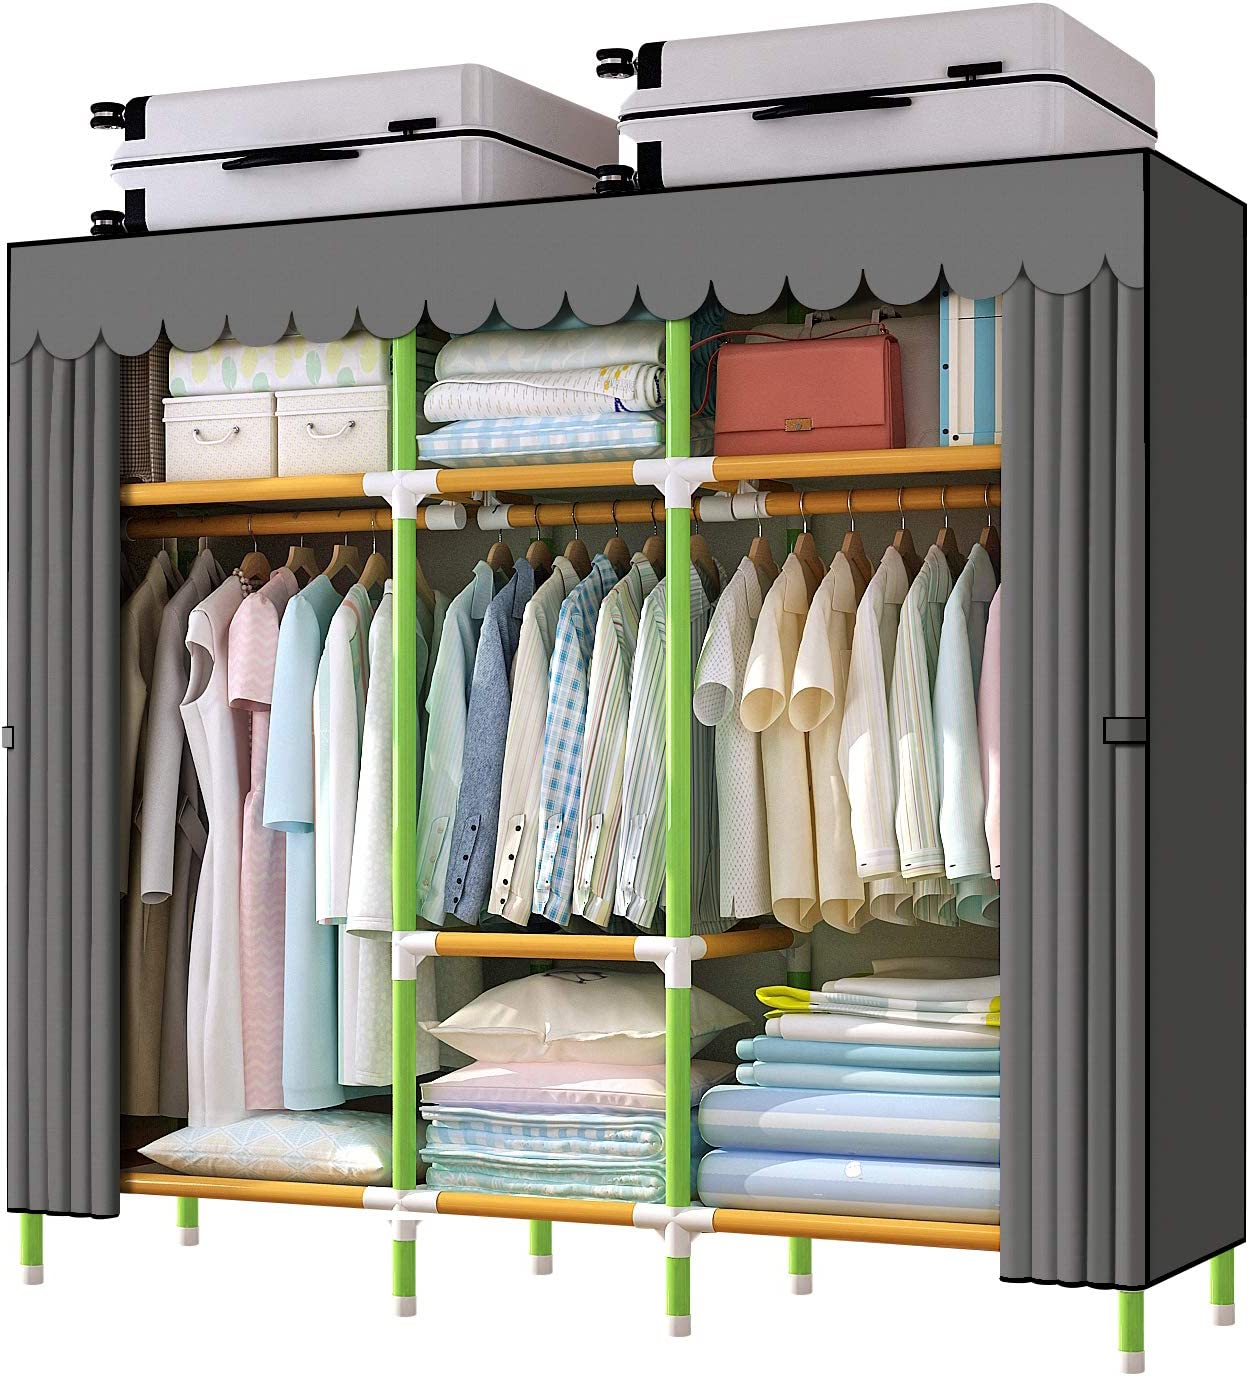 "YOUUD 68"" Wardrobe Storage Closet Colored Rod and Dark Grey Cover Portable Closet Stroage Organizer, Quick and Easy to Assemble, Sturdy Strong and Durable"